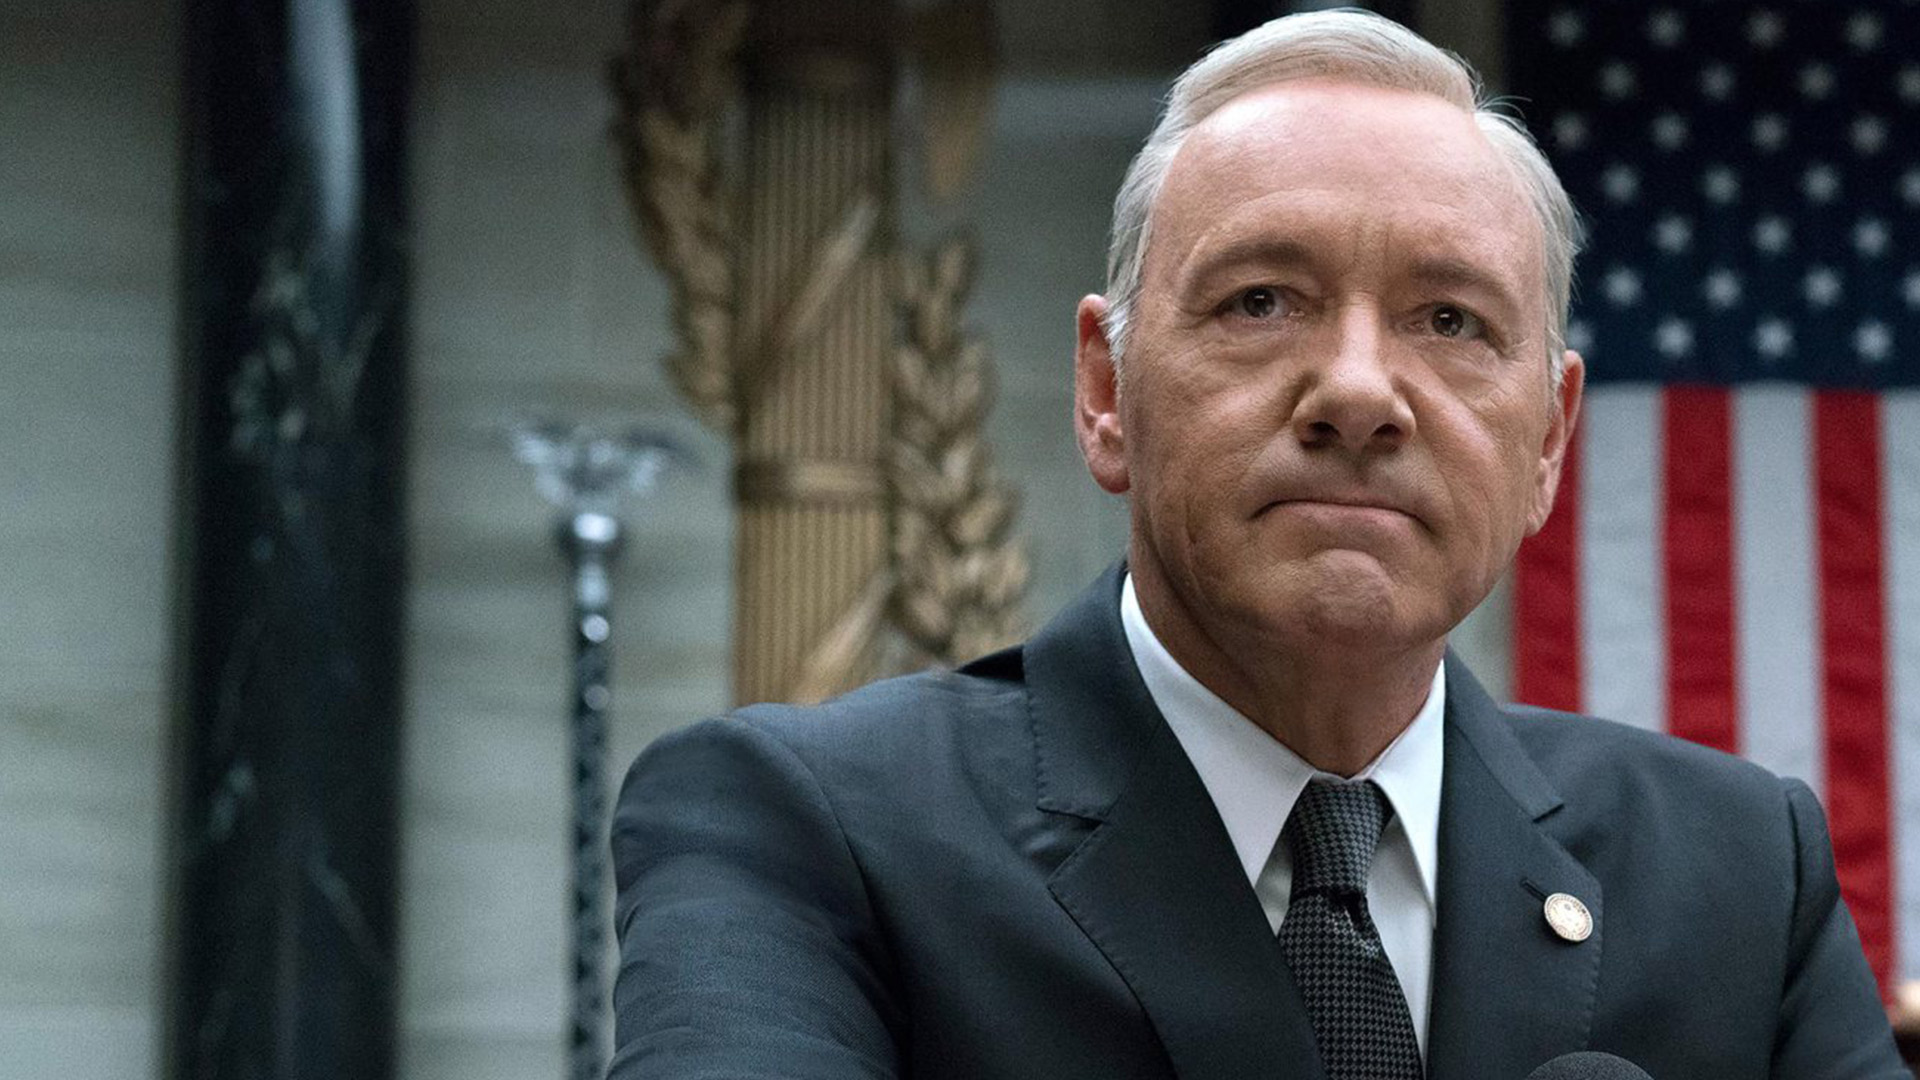 house of cards season 5 episode 13 watch online free